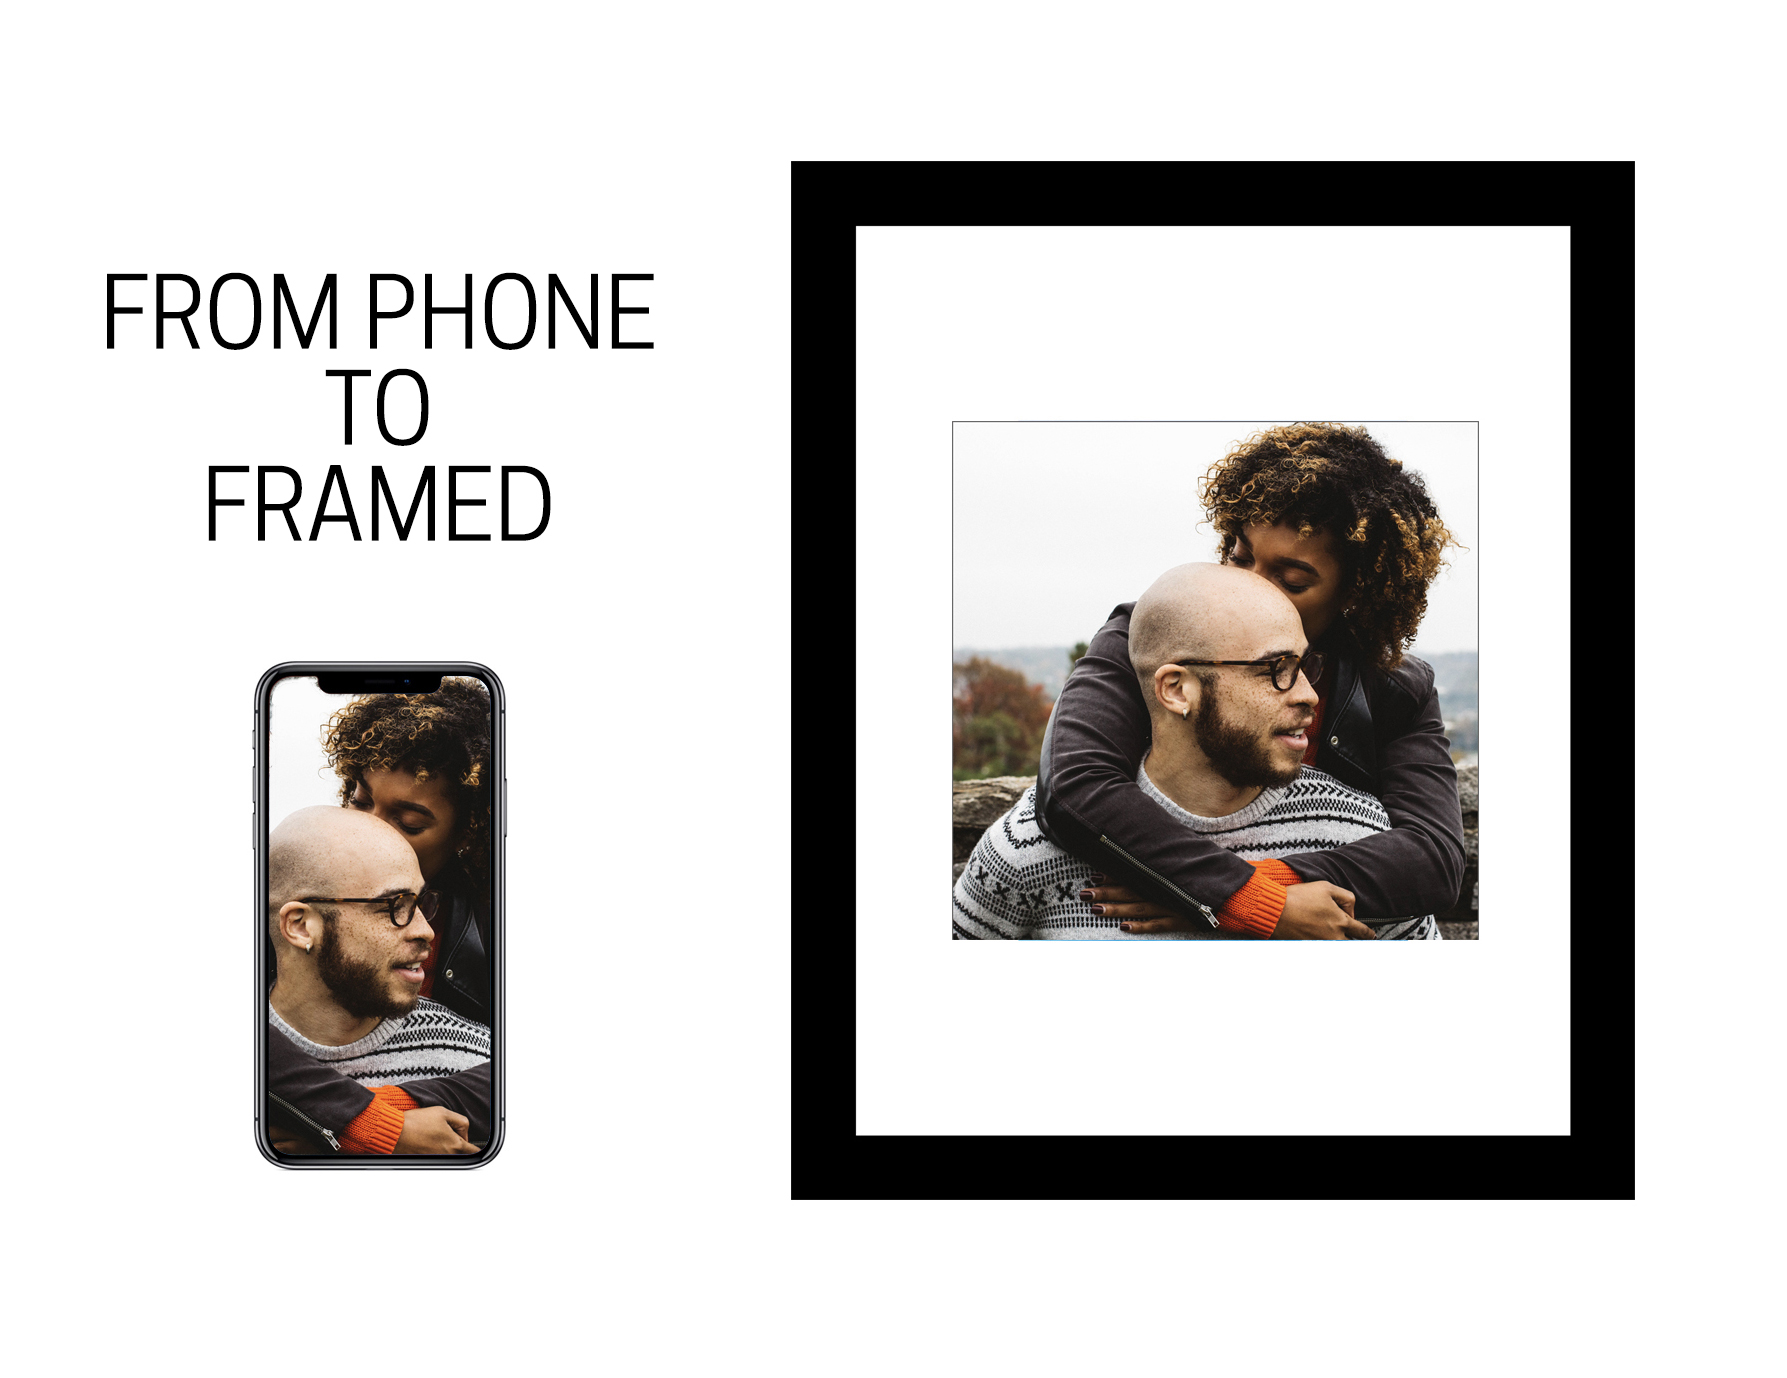 From Phone to Framed - form image.jpg